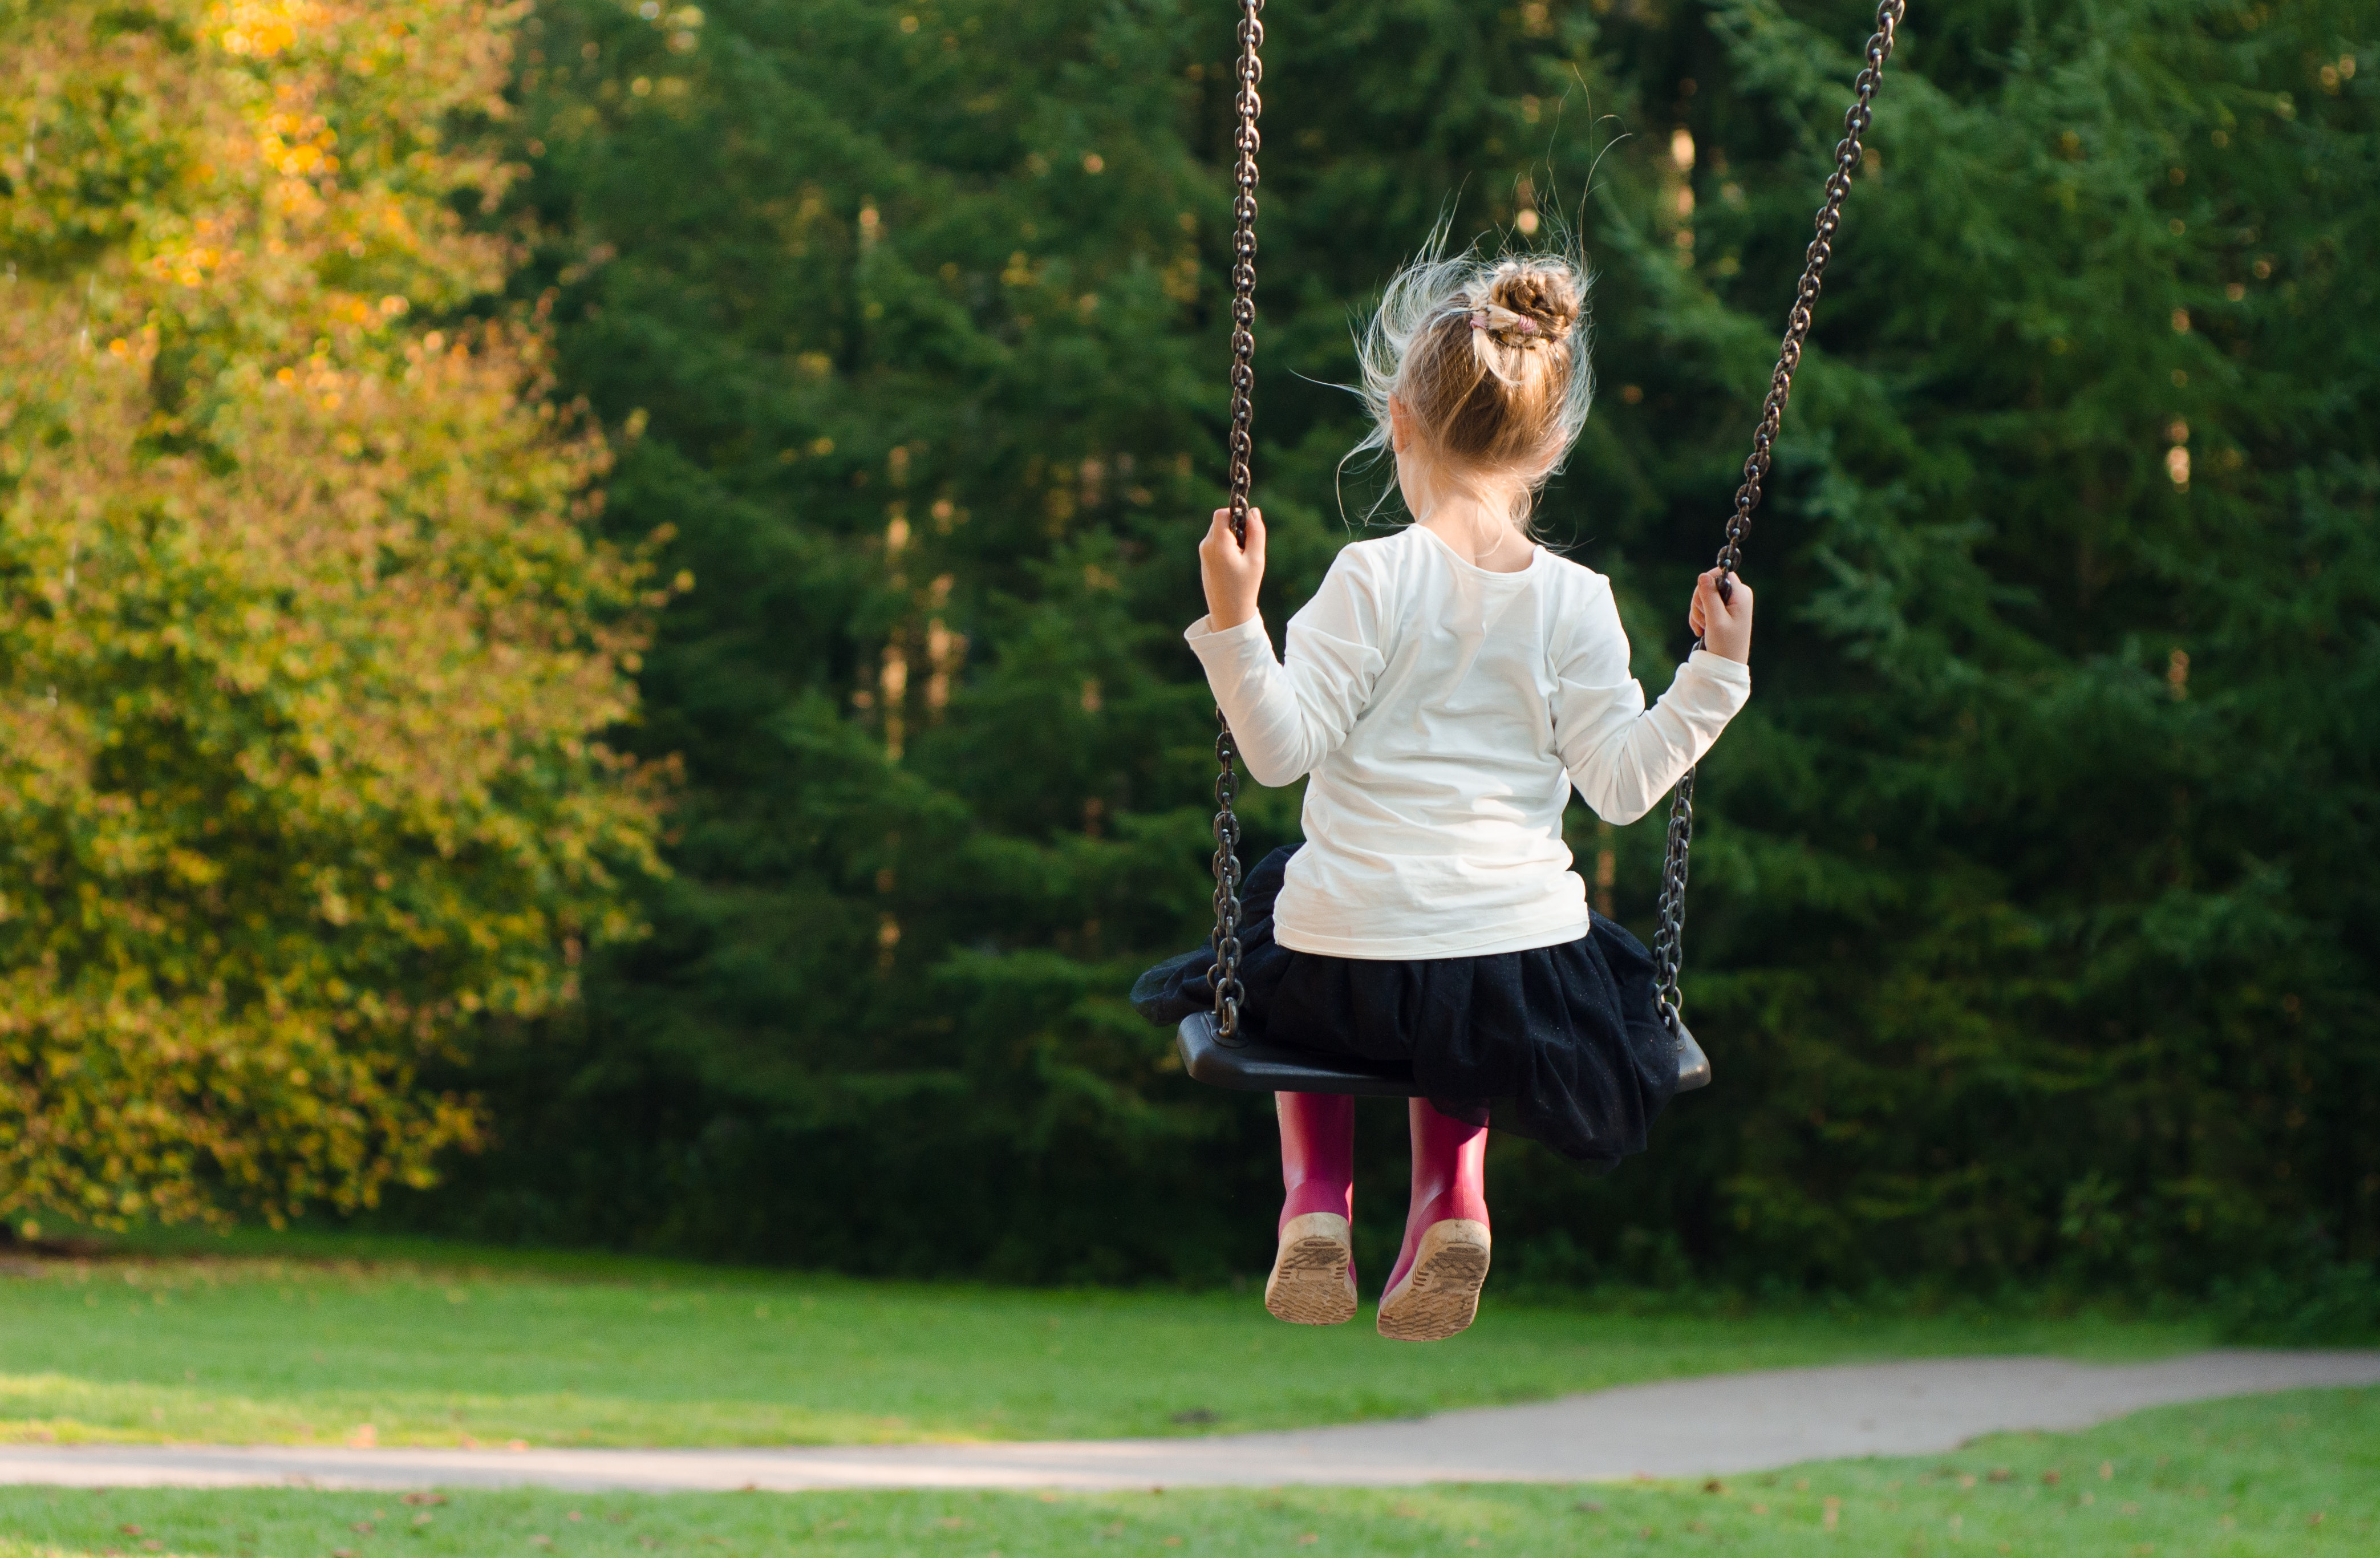 Tips to calm an anxious child. A stock photo of the back on a little girl with blonde hair in a bun and pink wellies sitting on a swing.